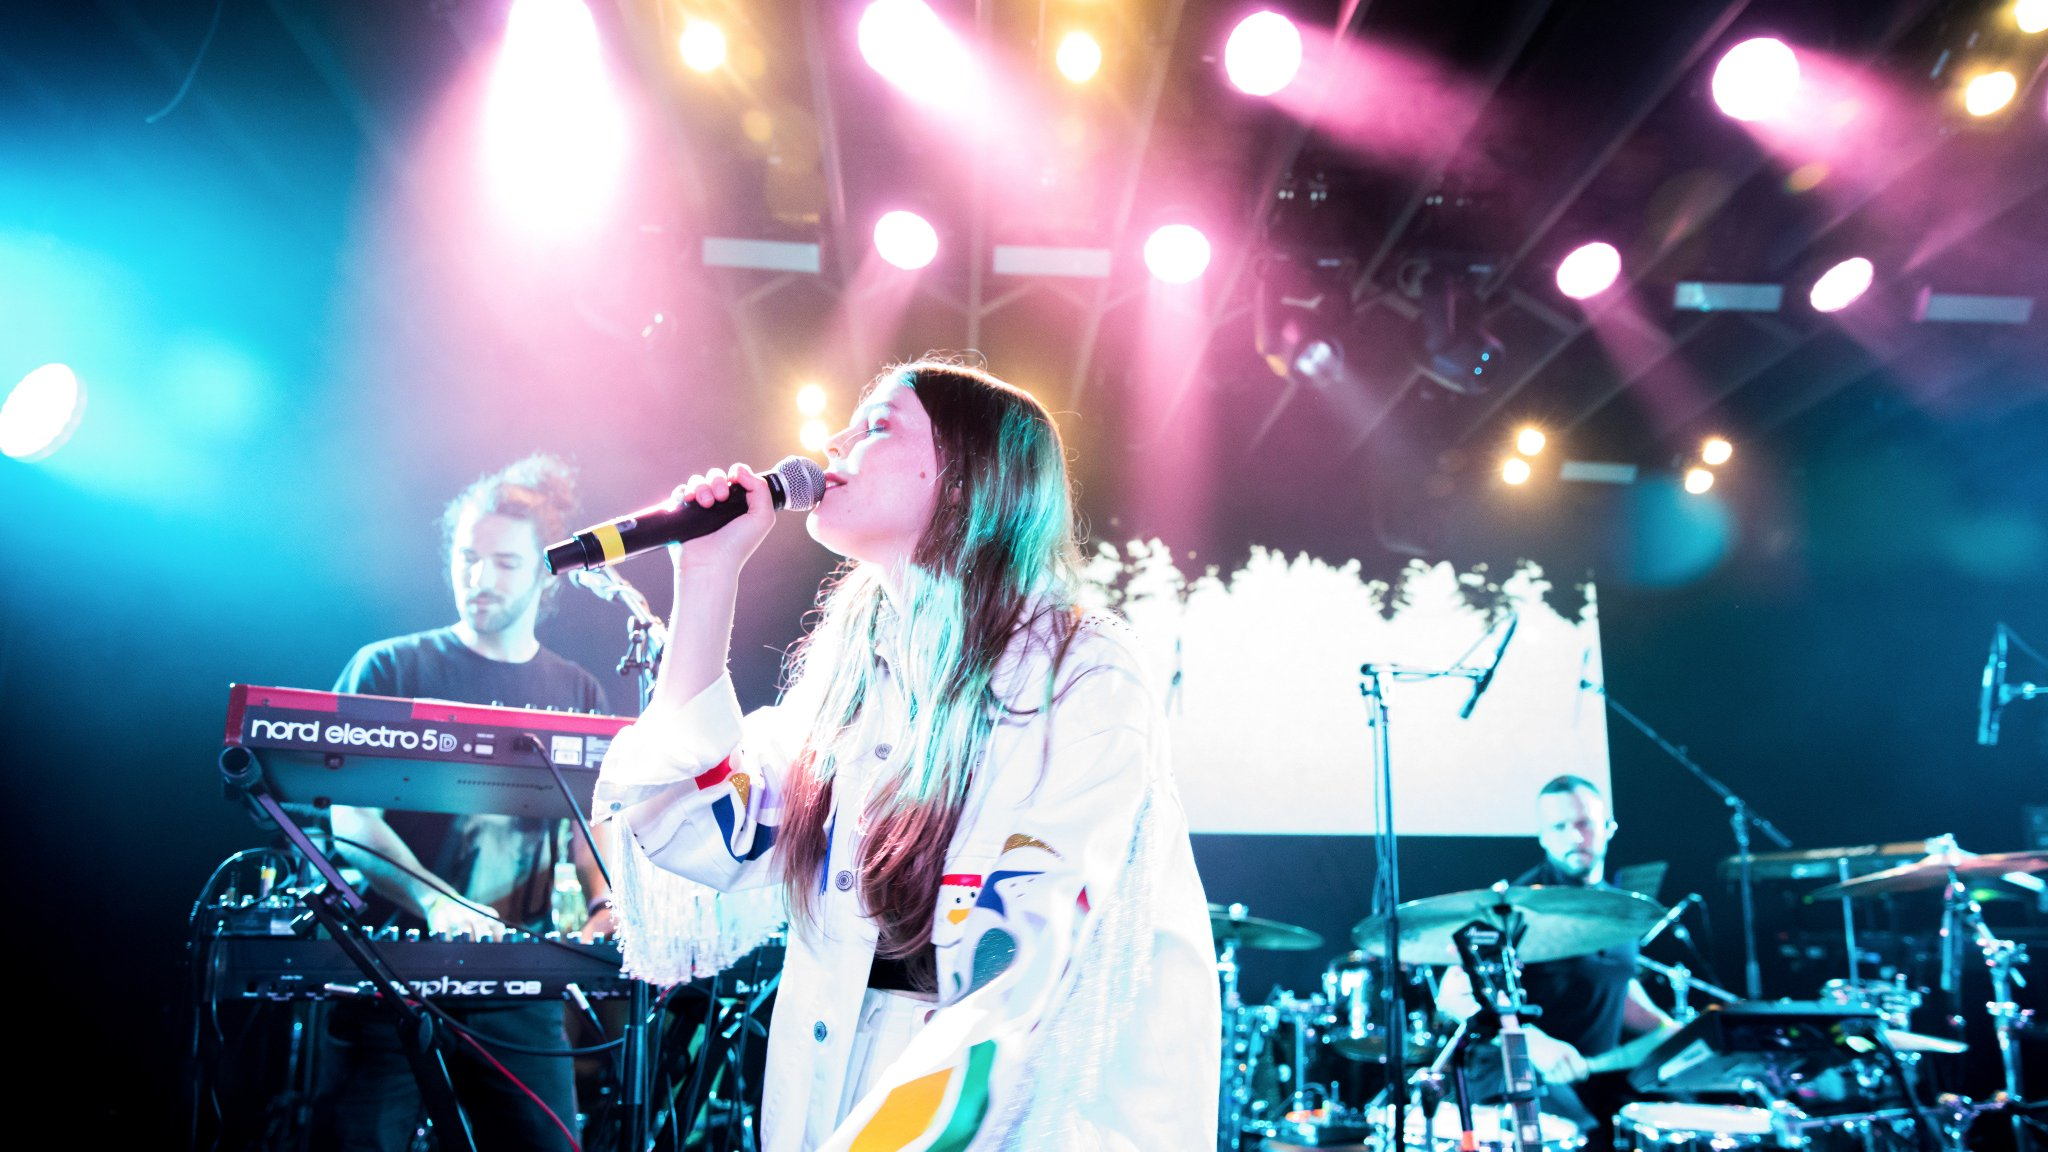 .@maggierogers continues to soar with her beautiful performance at #YouTube #SXSW https://t.co/LhHQbcSi9A